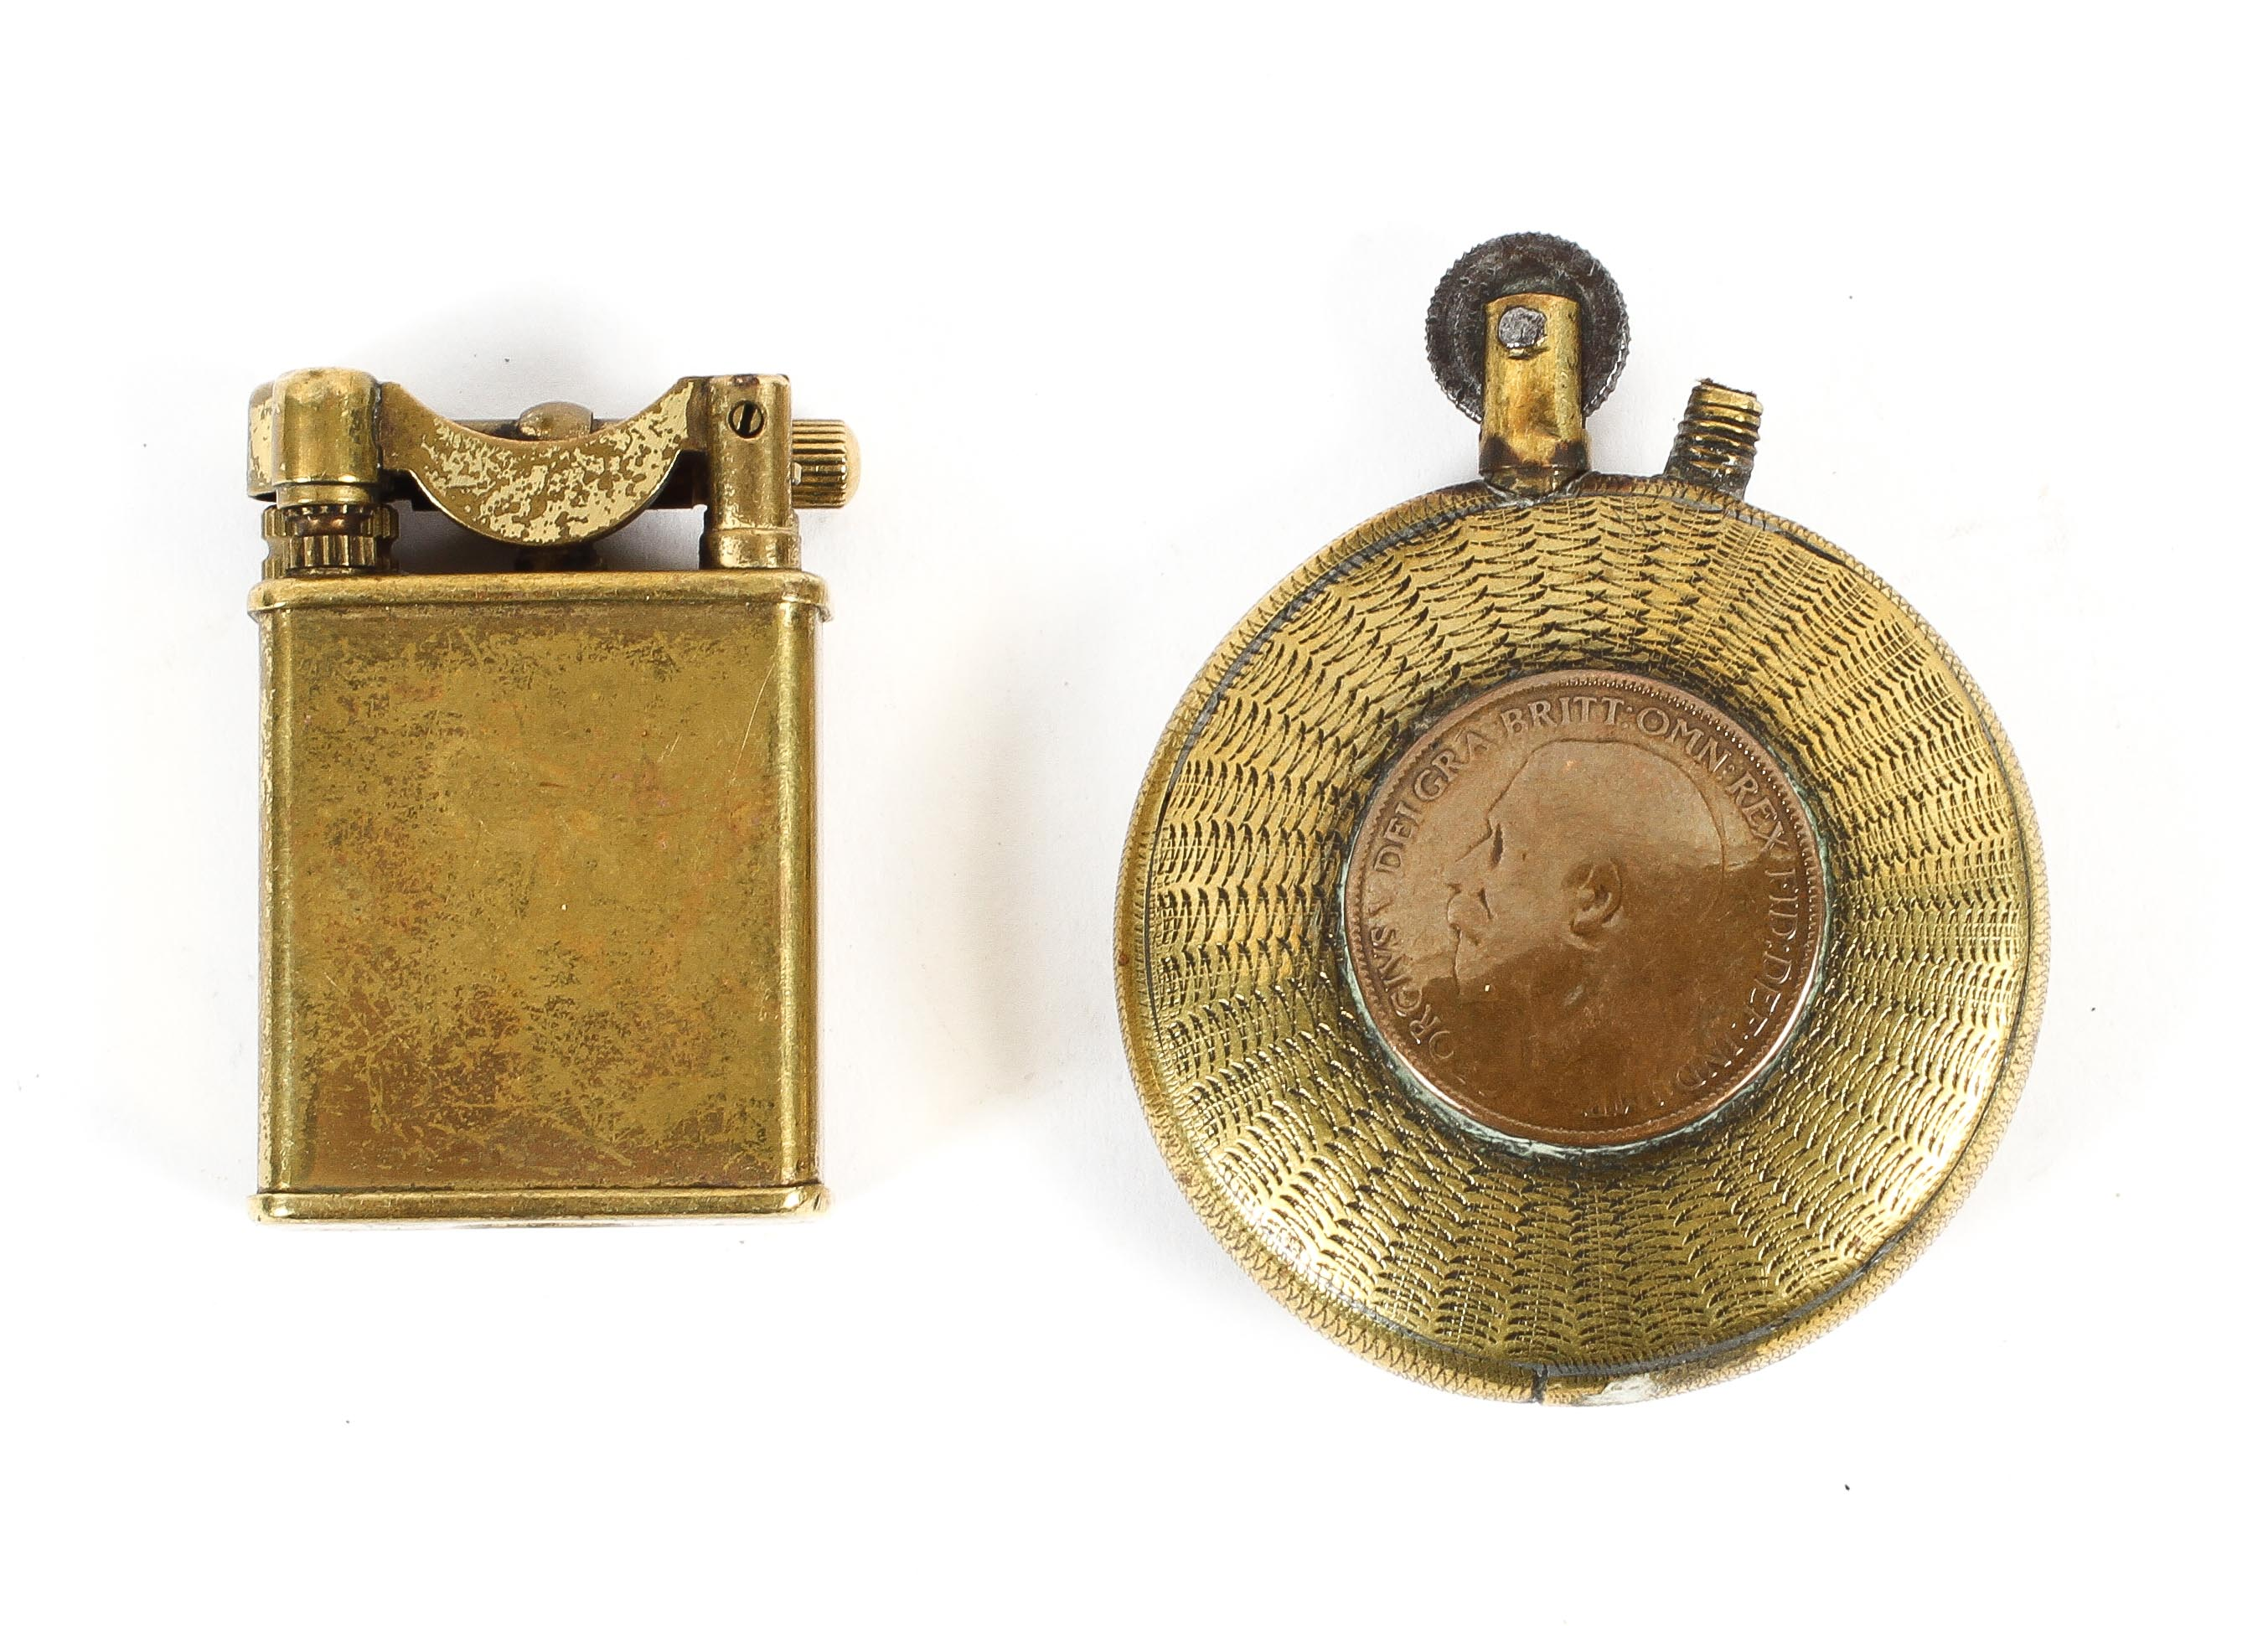 Two trench art lighters together with a brass shell case, - Image 2 of 2